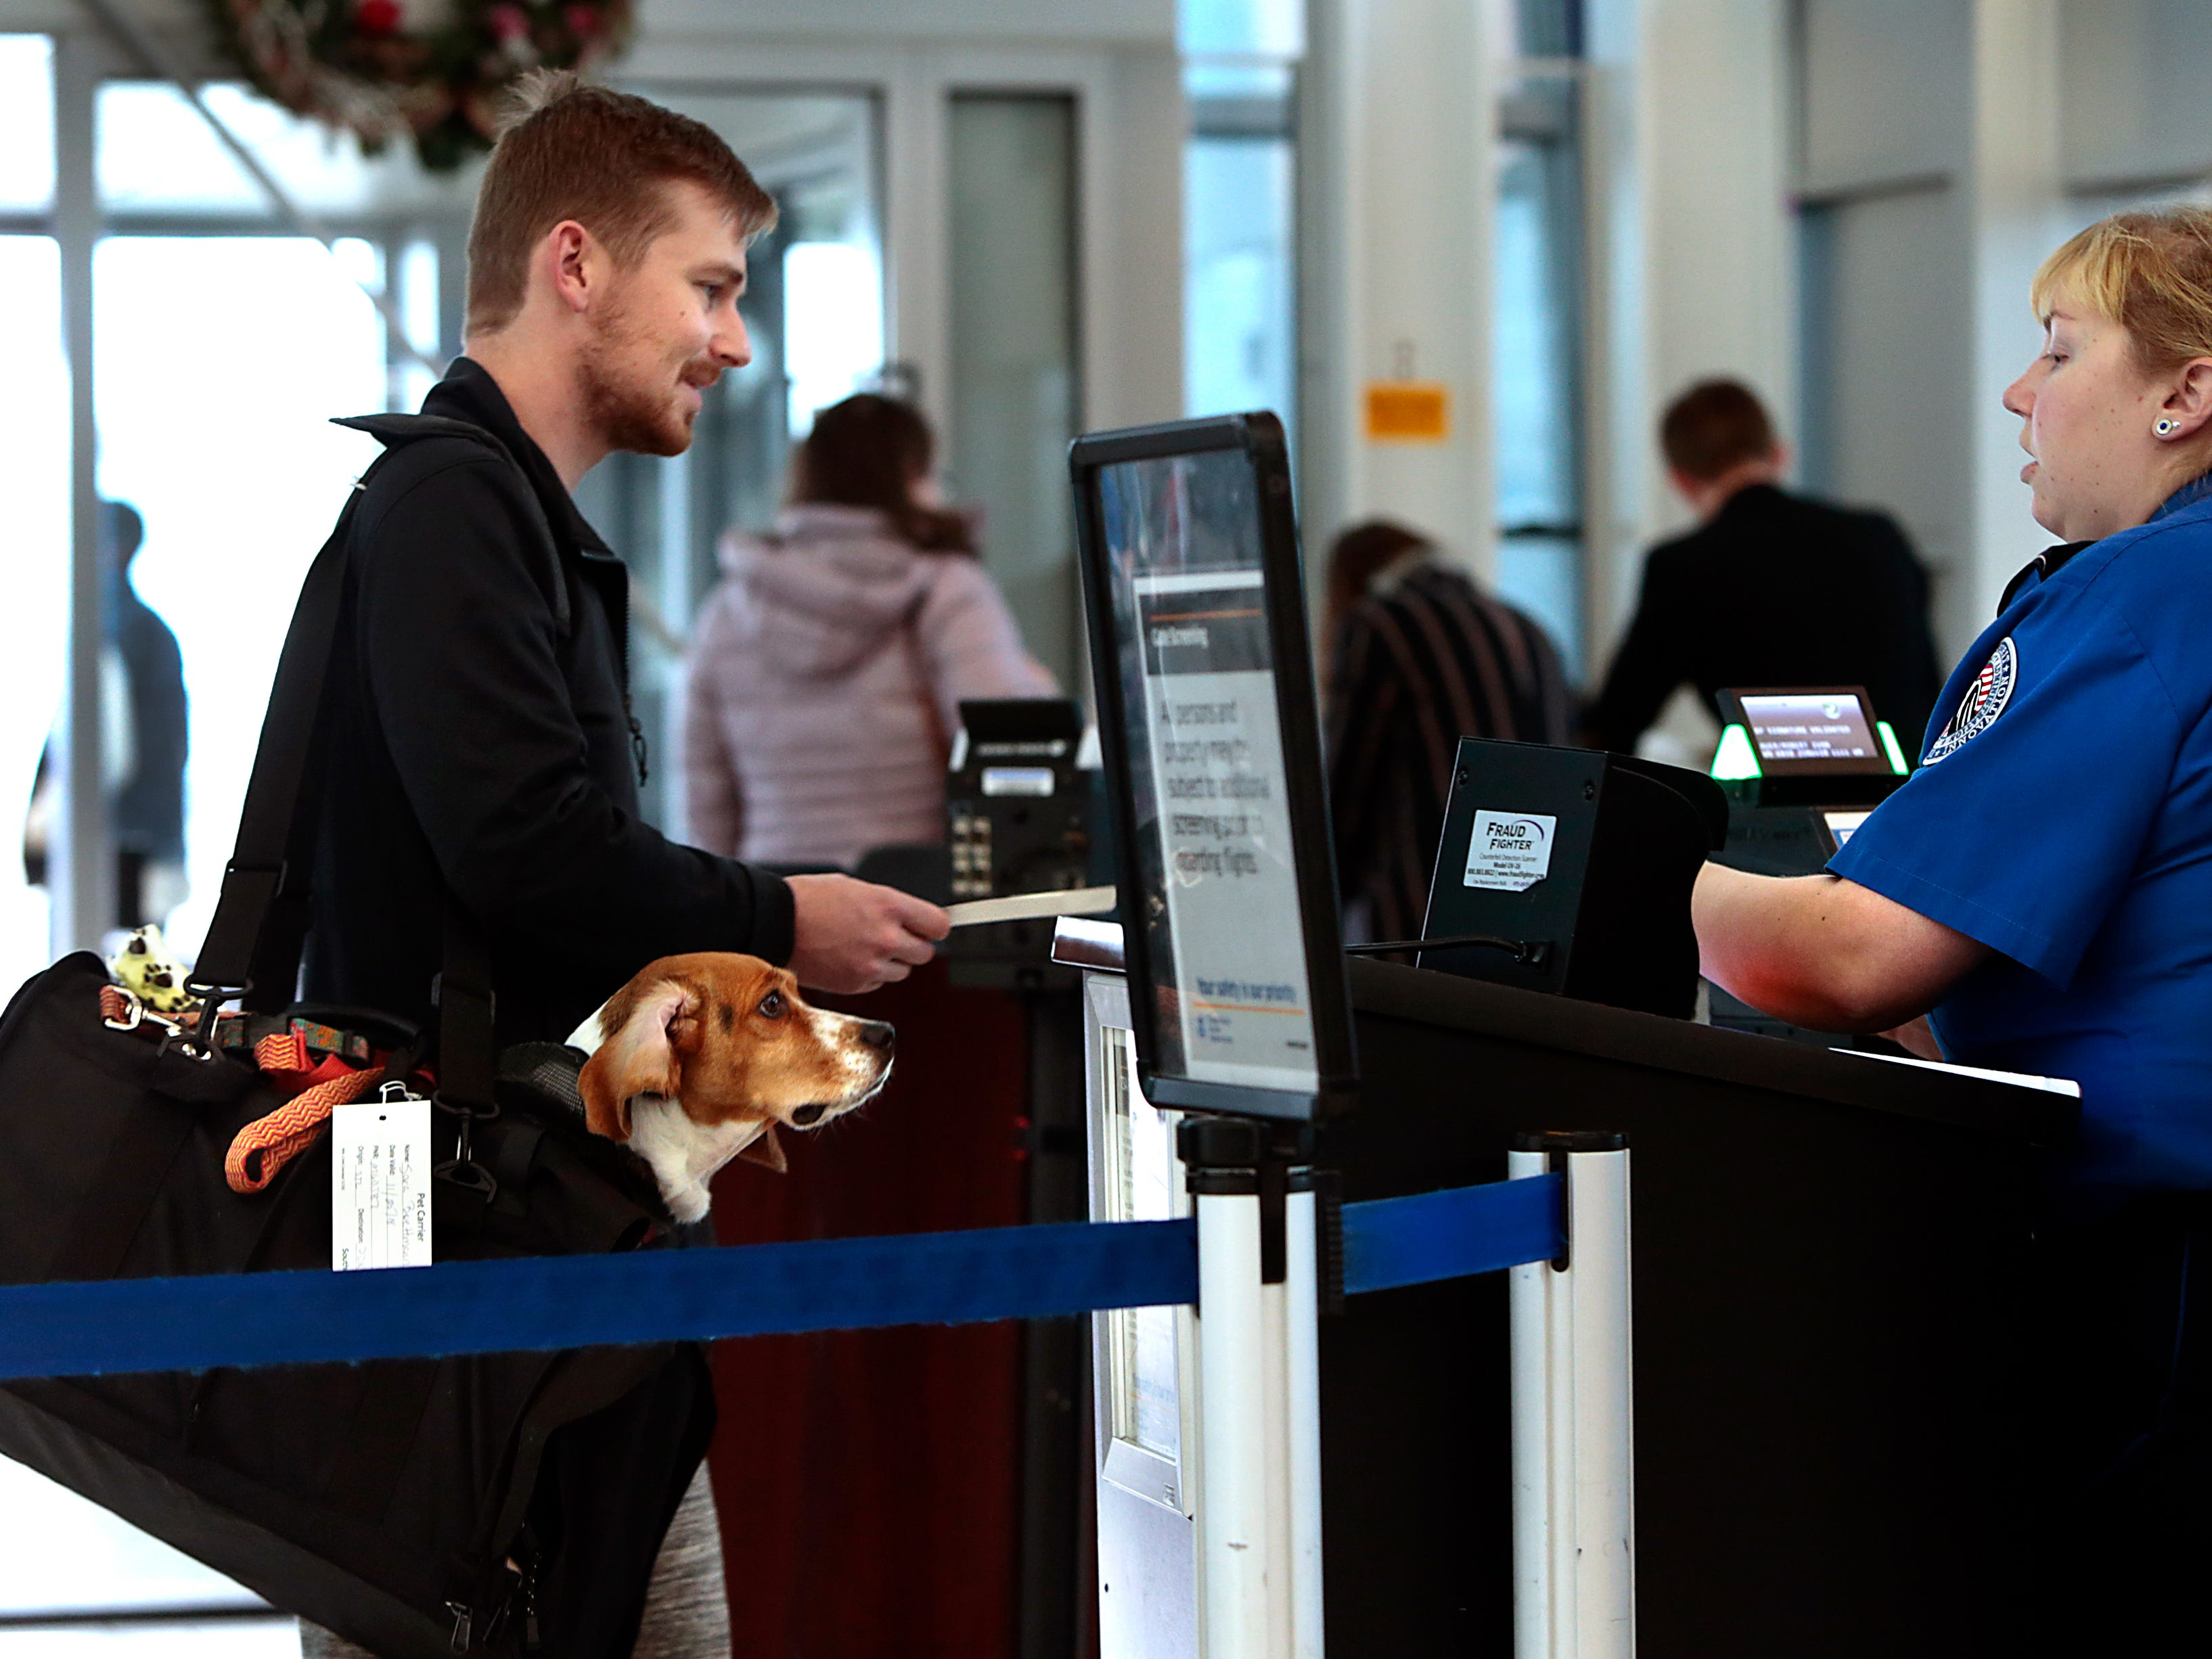 """Ivan Auer and his beagle Lillian greet a TSA agent at St. Louis Lambert International Airport as he and his girlfriend Sara Buettmann head home to Portland, Ore., Sunday, Nov. 25, 2018, after spending Thanksgiving with Buettmann's family in Ballwin, Mo. Sunday is traditionally the busiest travel day at the airport and the couple was ready for any delays. """"We're loaded with treats,"""" said Buettmann."""